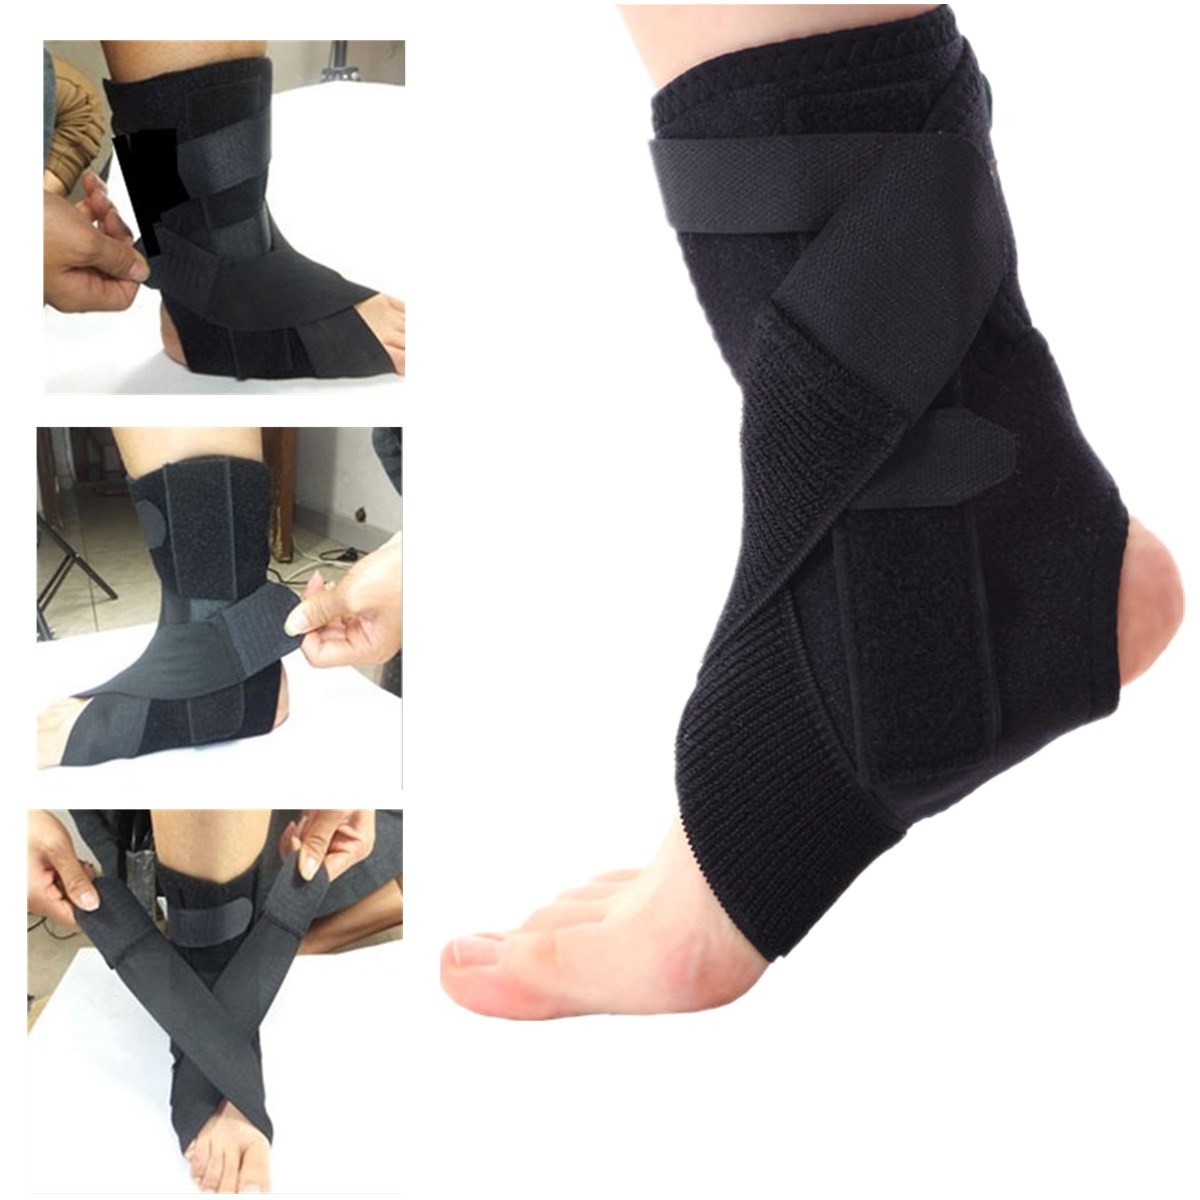 1pcs Sports Safety Ankle Support Pad Protection Ankle Bandage Elastic Brace Guard Support Sports Gym Foot Wrap Protection